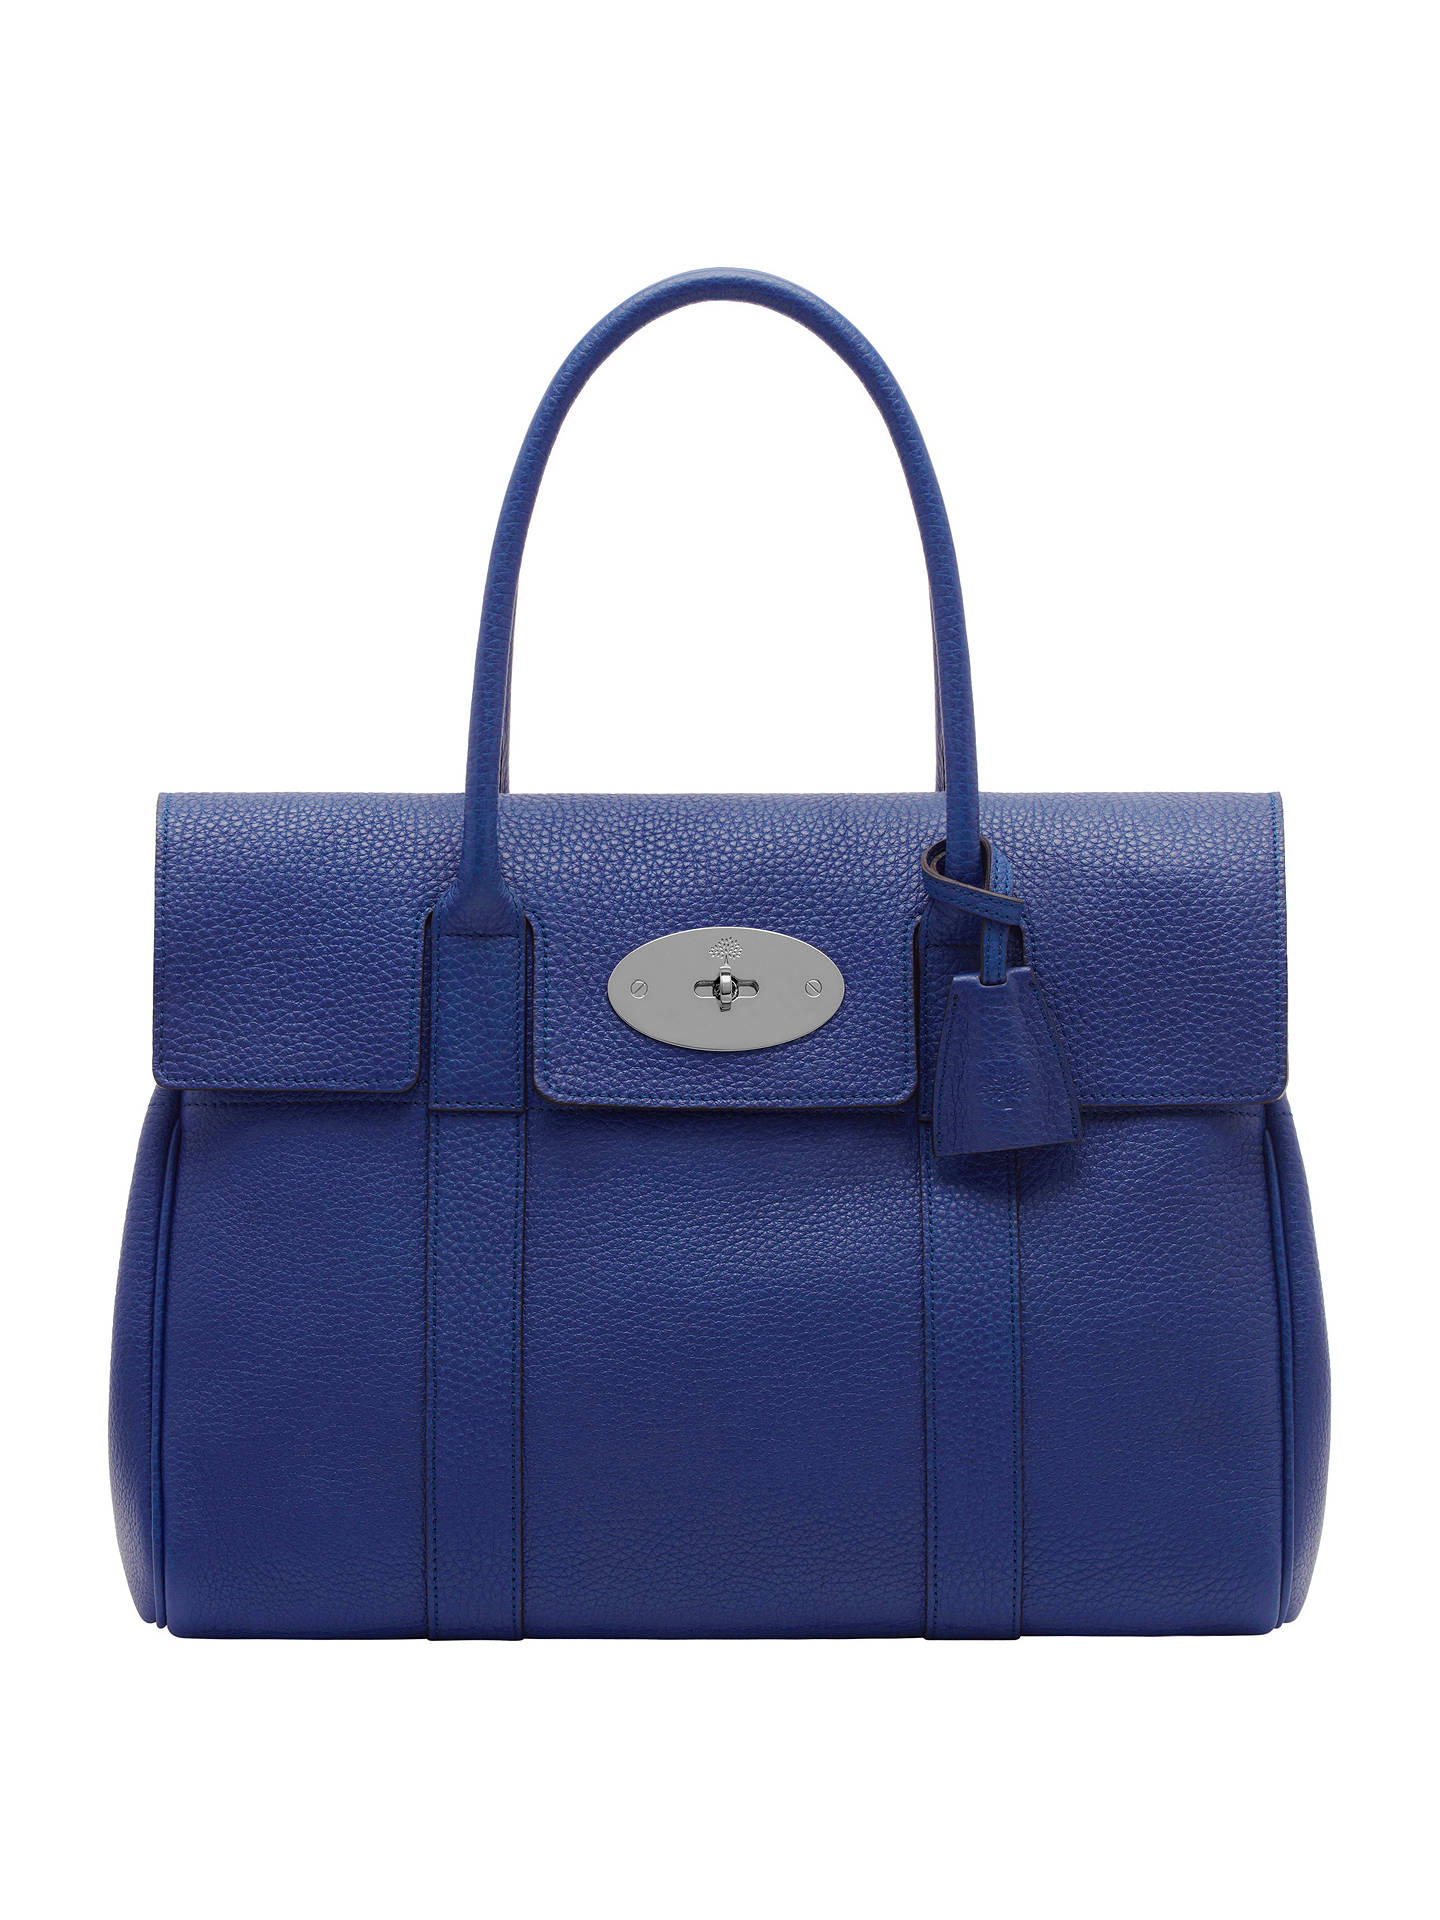 Mulberry Bayswater Leather Grab Bag at John Lewis   Partners 8e37bf1282f77